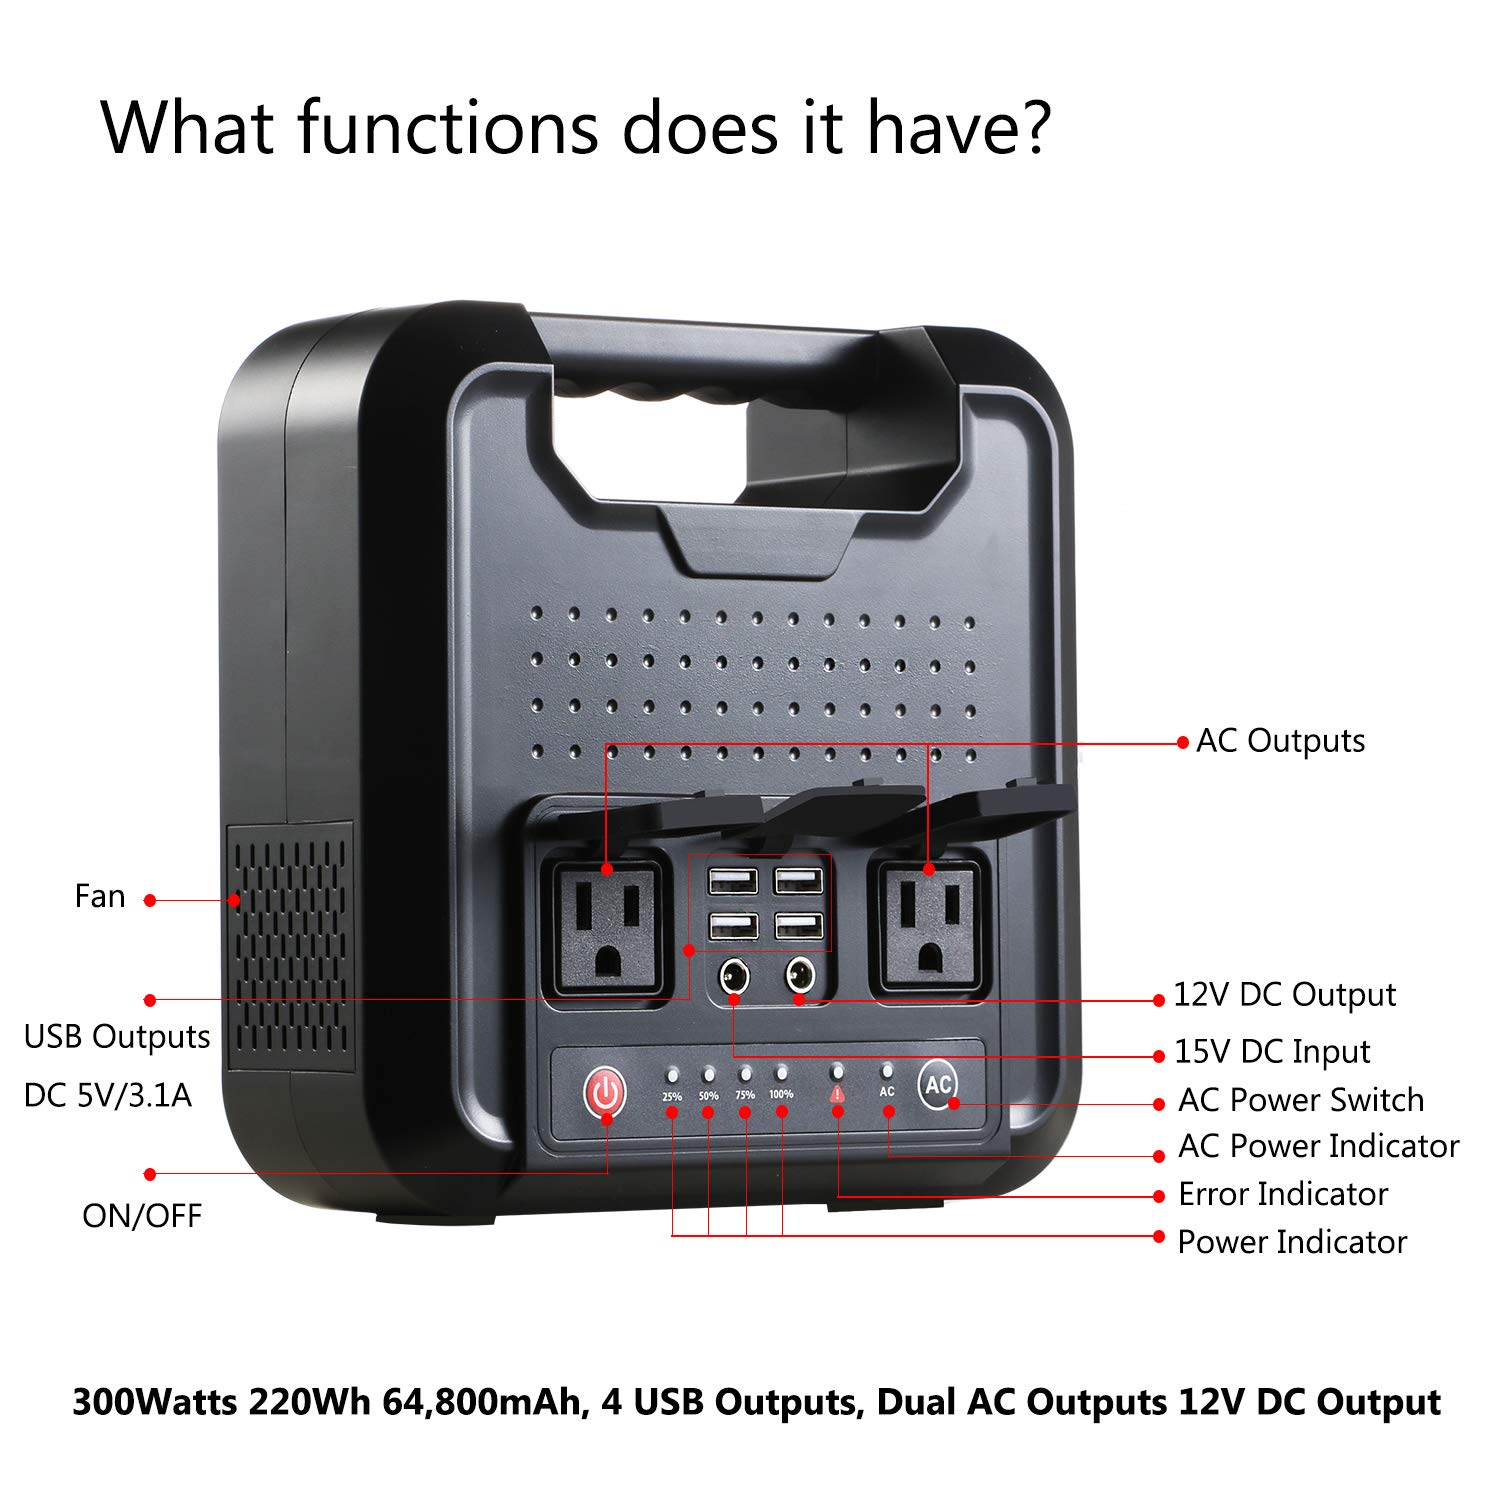 Portable AC Power Bank, 300Watts 220Wh Pure SineWave Power Inverter, Mini Generator, Power Charger, External Battery Packs with 110V AC Outlet, 12V DC USB for Camping, Traveling, Emergency Backup